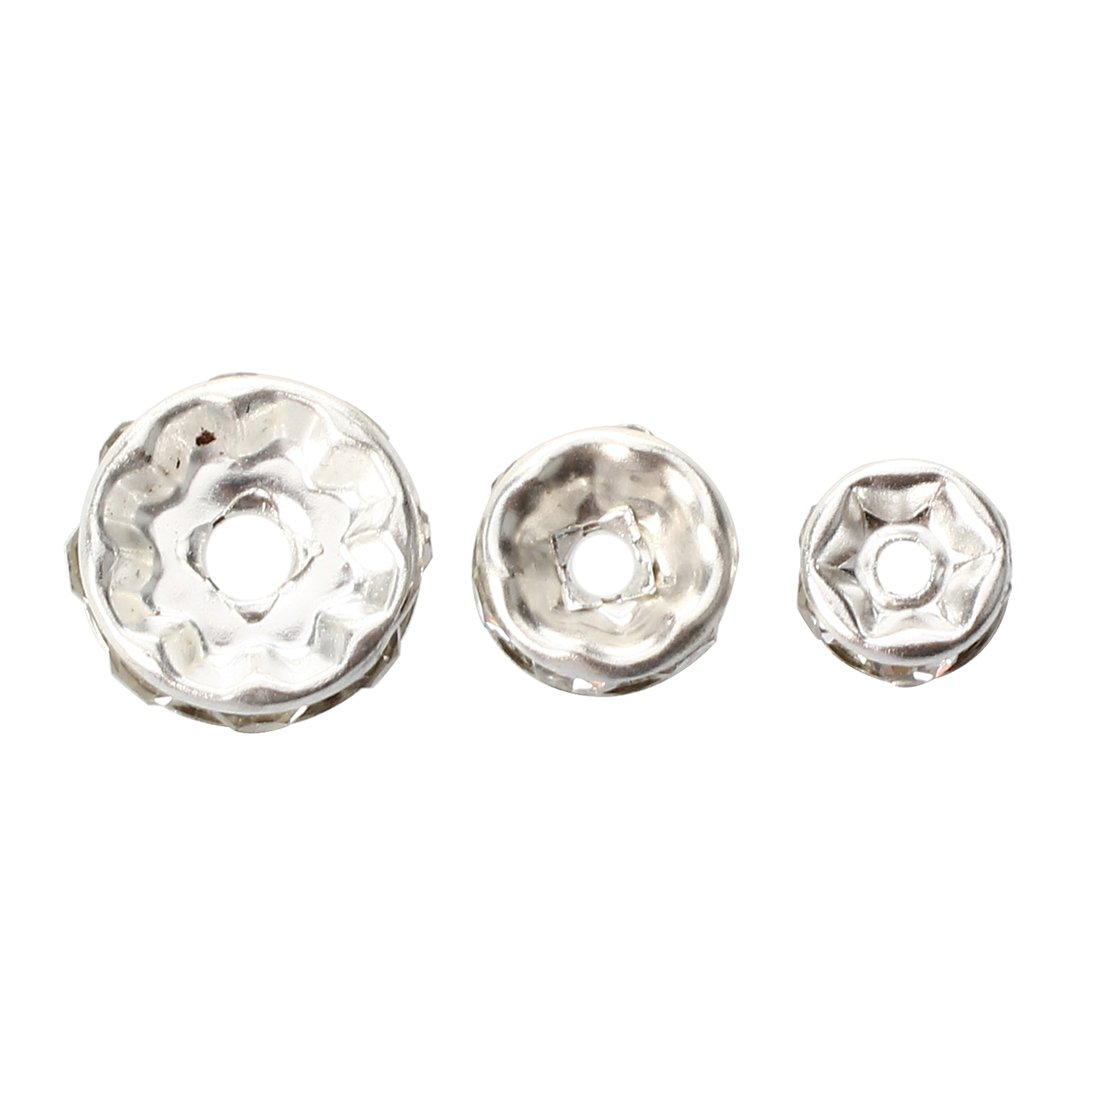 Bead spacer - SODIAL(R) 75pcs Silver bead spacer plate and rhinestone DIY Deco Necklace Jewelry 6 + 8 + 10mm 024227